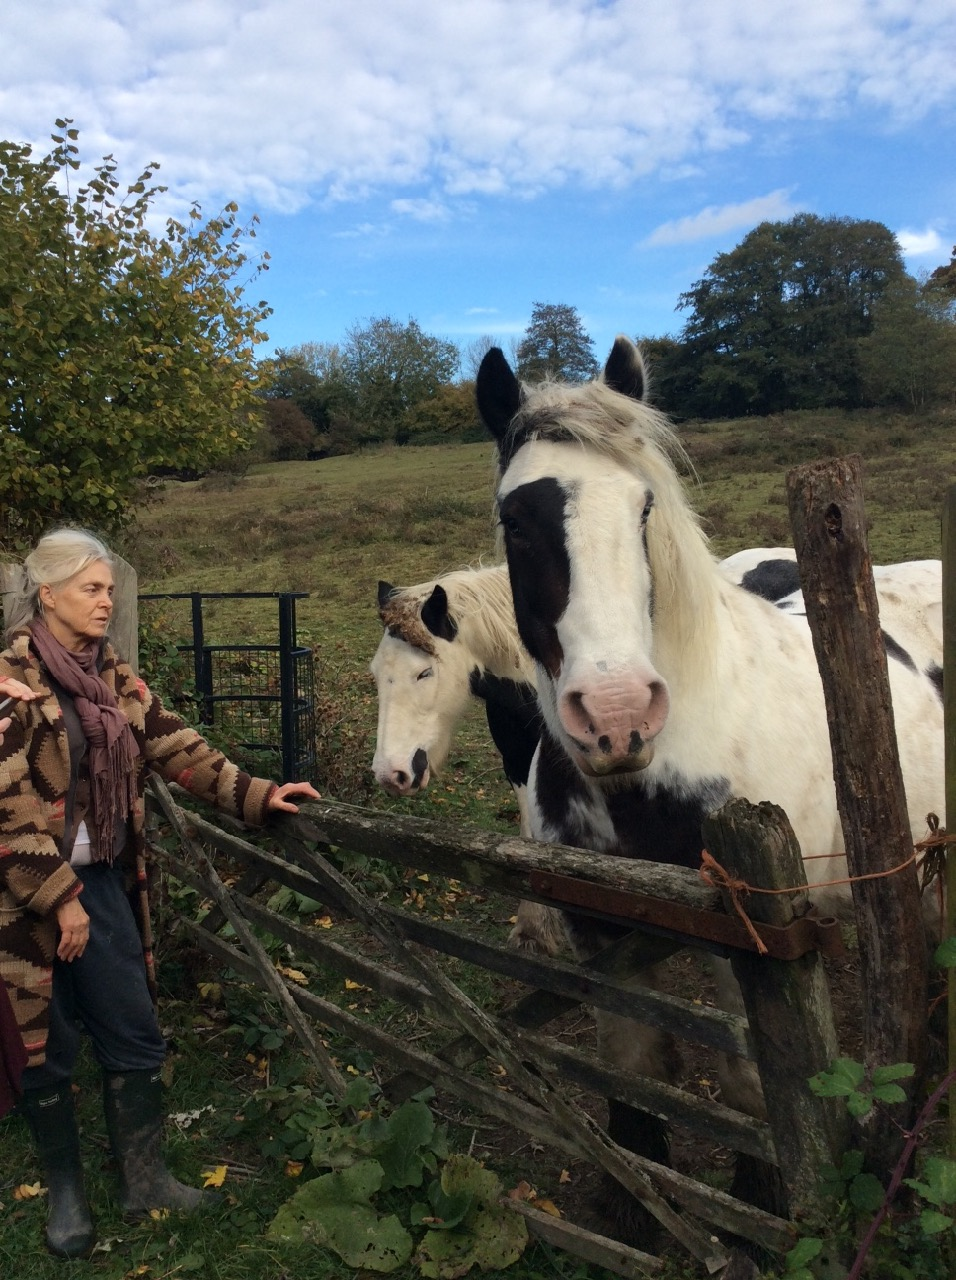 Jacqui and the friendliest horses in the world.